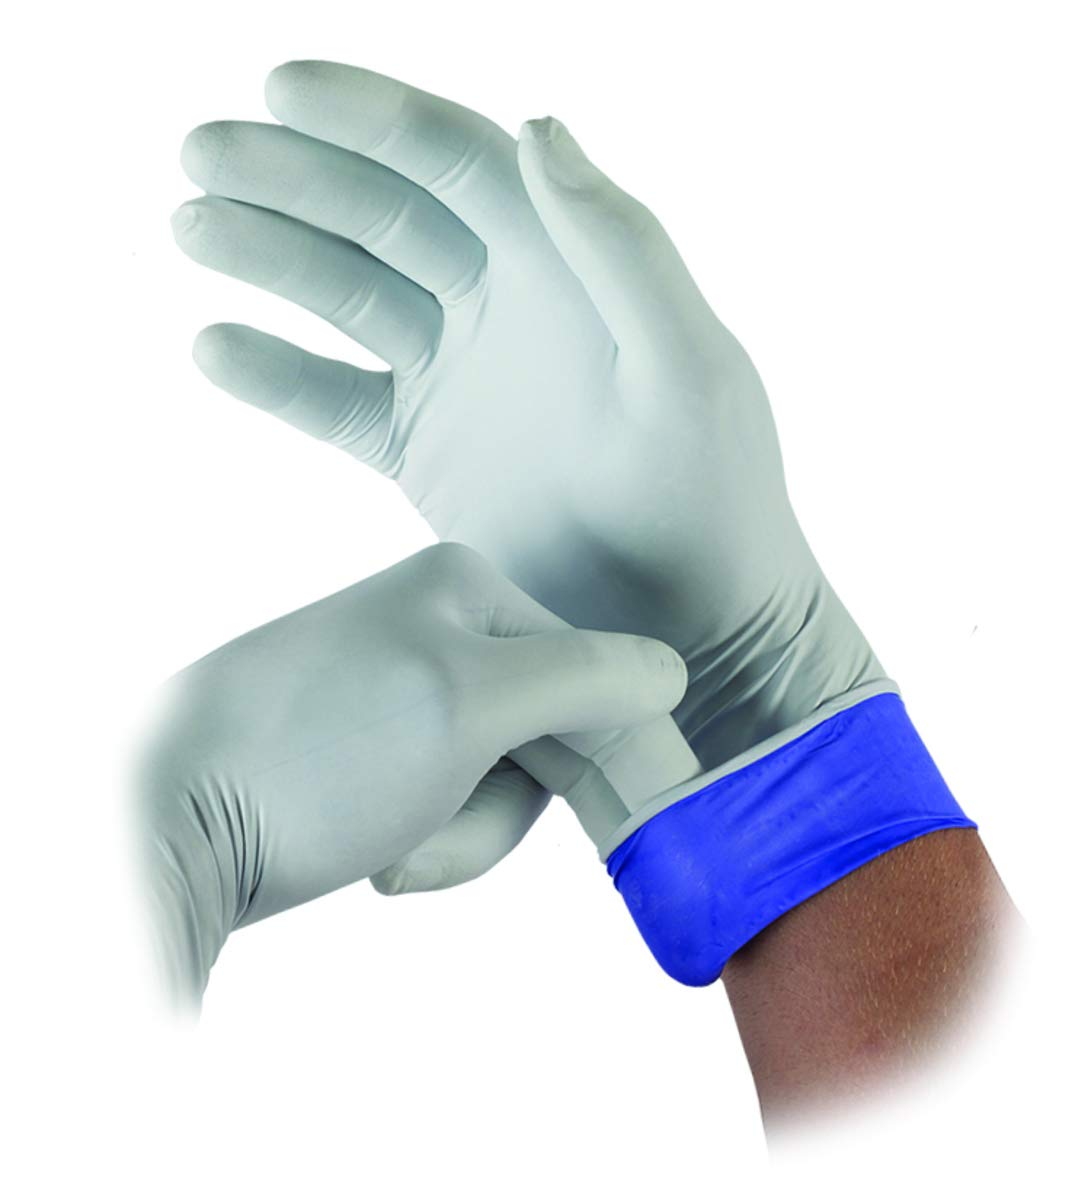 Ansell Small White/Blue Microflex LIFESTAR EC 5.5 mil Nitrile Disposable Gloves (100 Gloves Per Box) (Pack Quantity 10) by Ansell (Image #1)